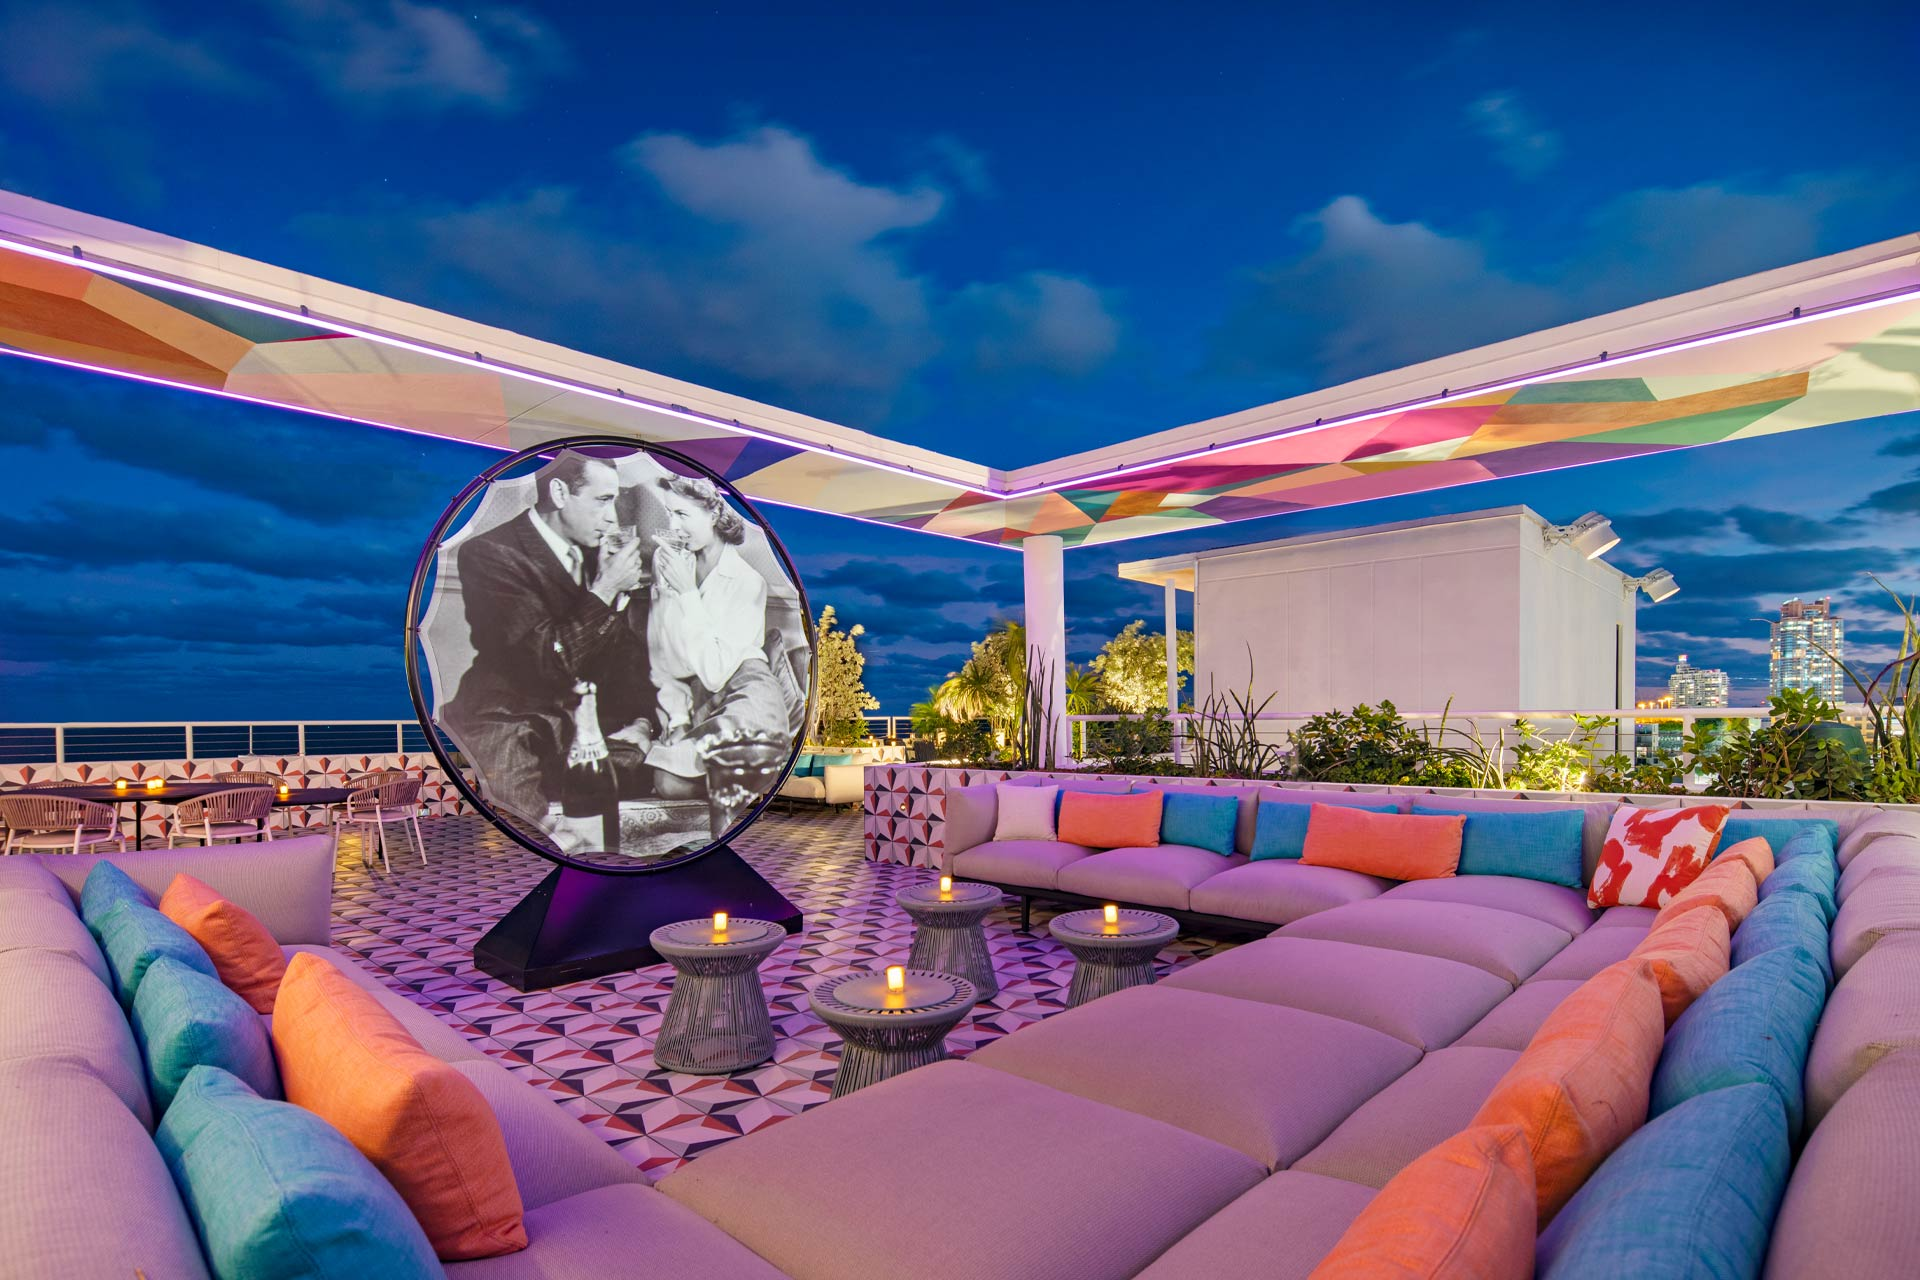 The Upside rooftop bar at Moxy Miami South Beach